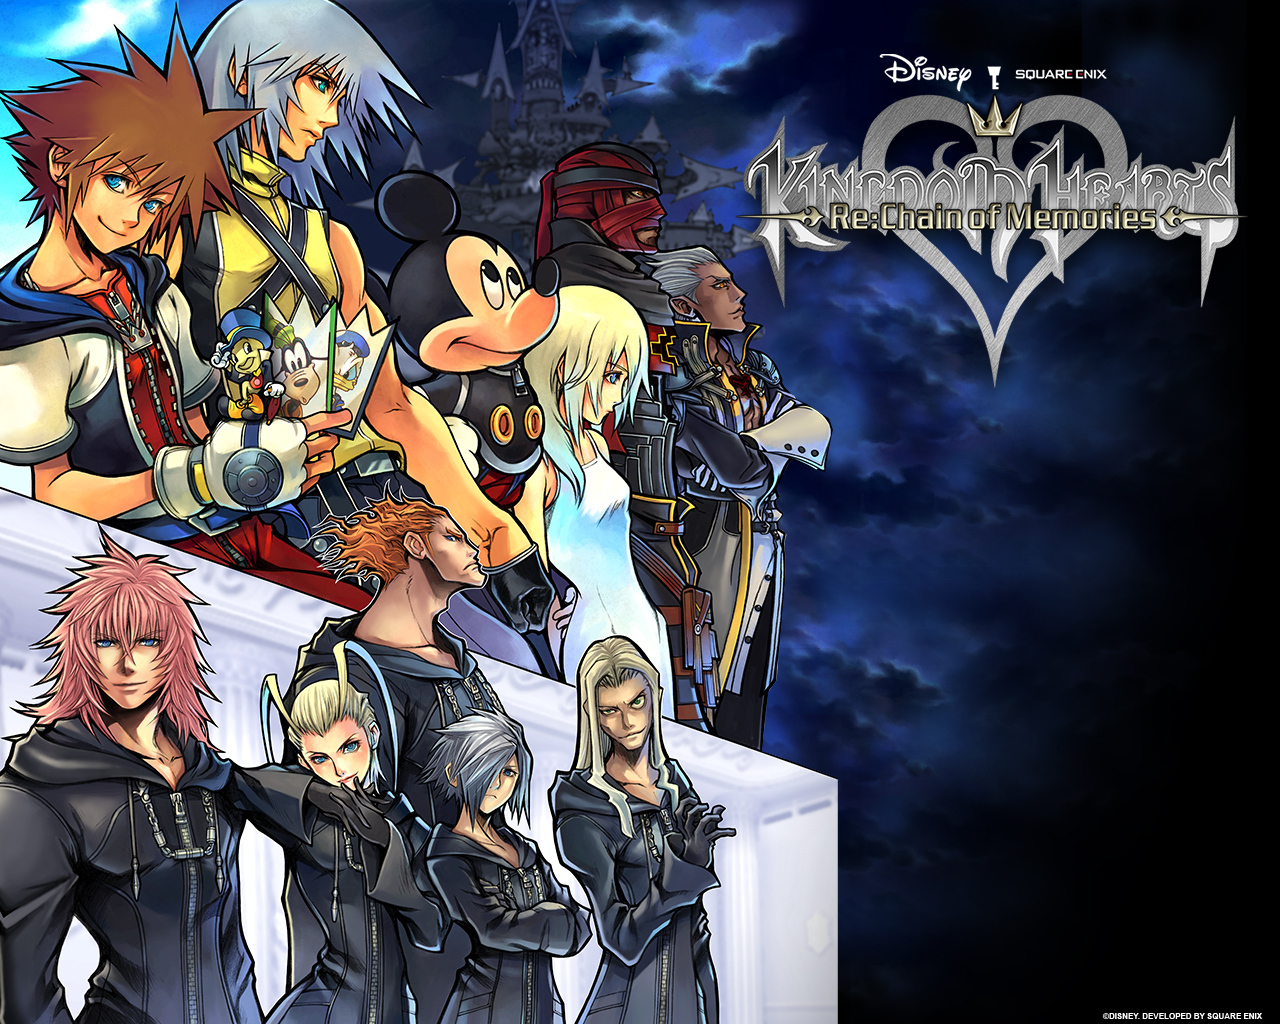 Official Kingdom Hearts Wallpaper kingdom hearts series 2754173 1280 1280x1024